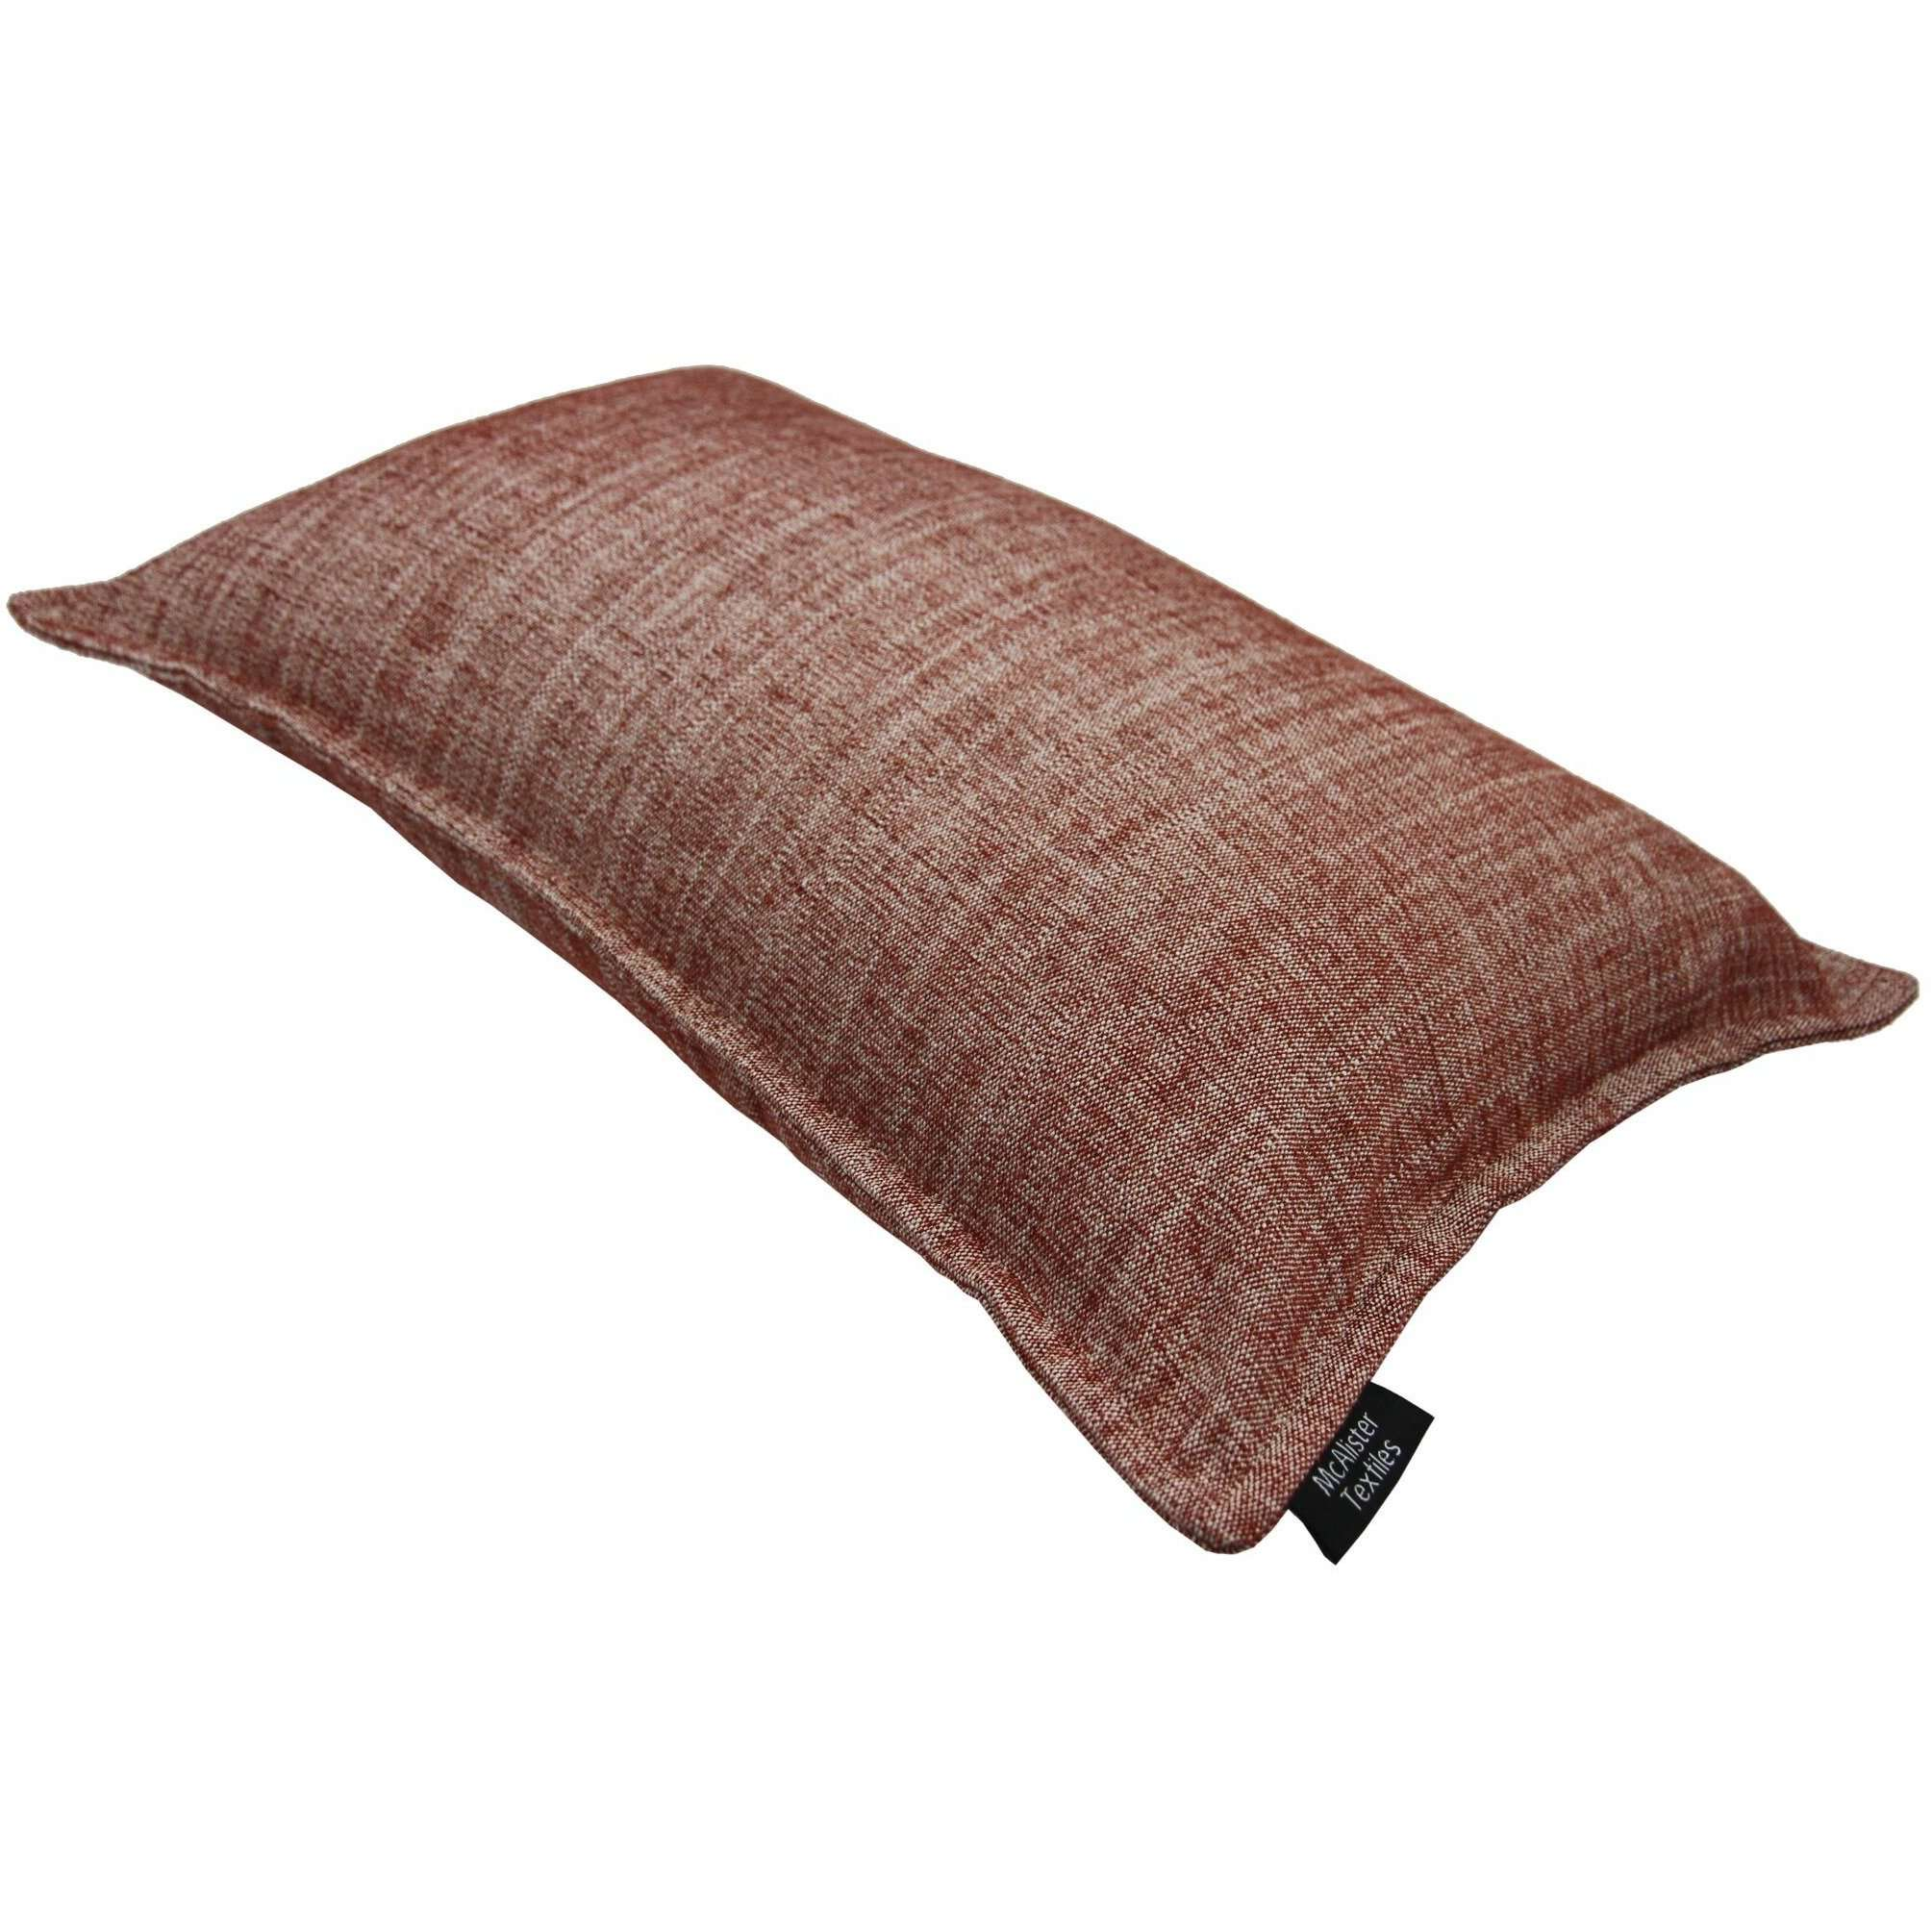 McAlister Textiles Rhumba Burnt Orange Cushion Cushions and Covers